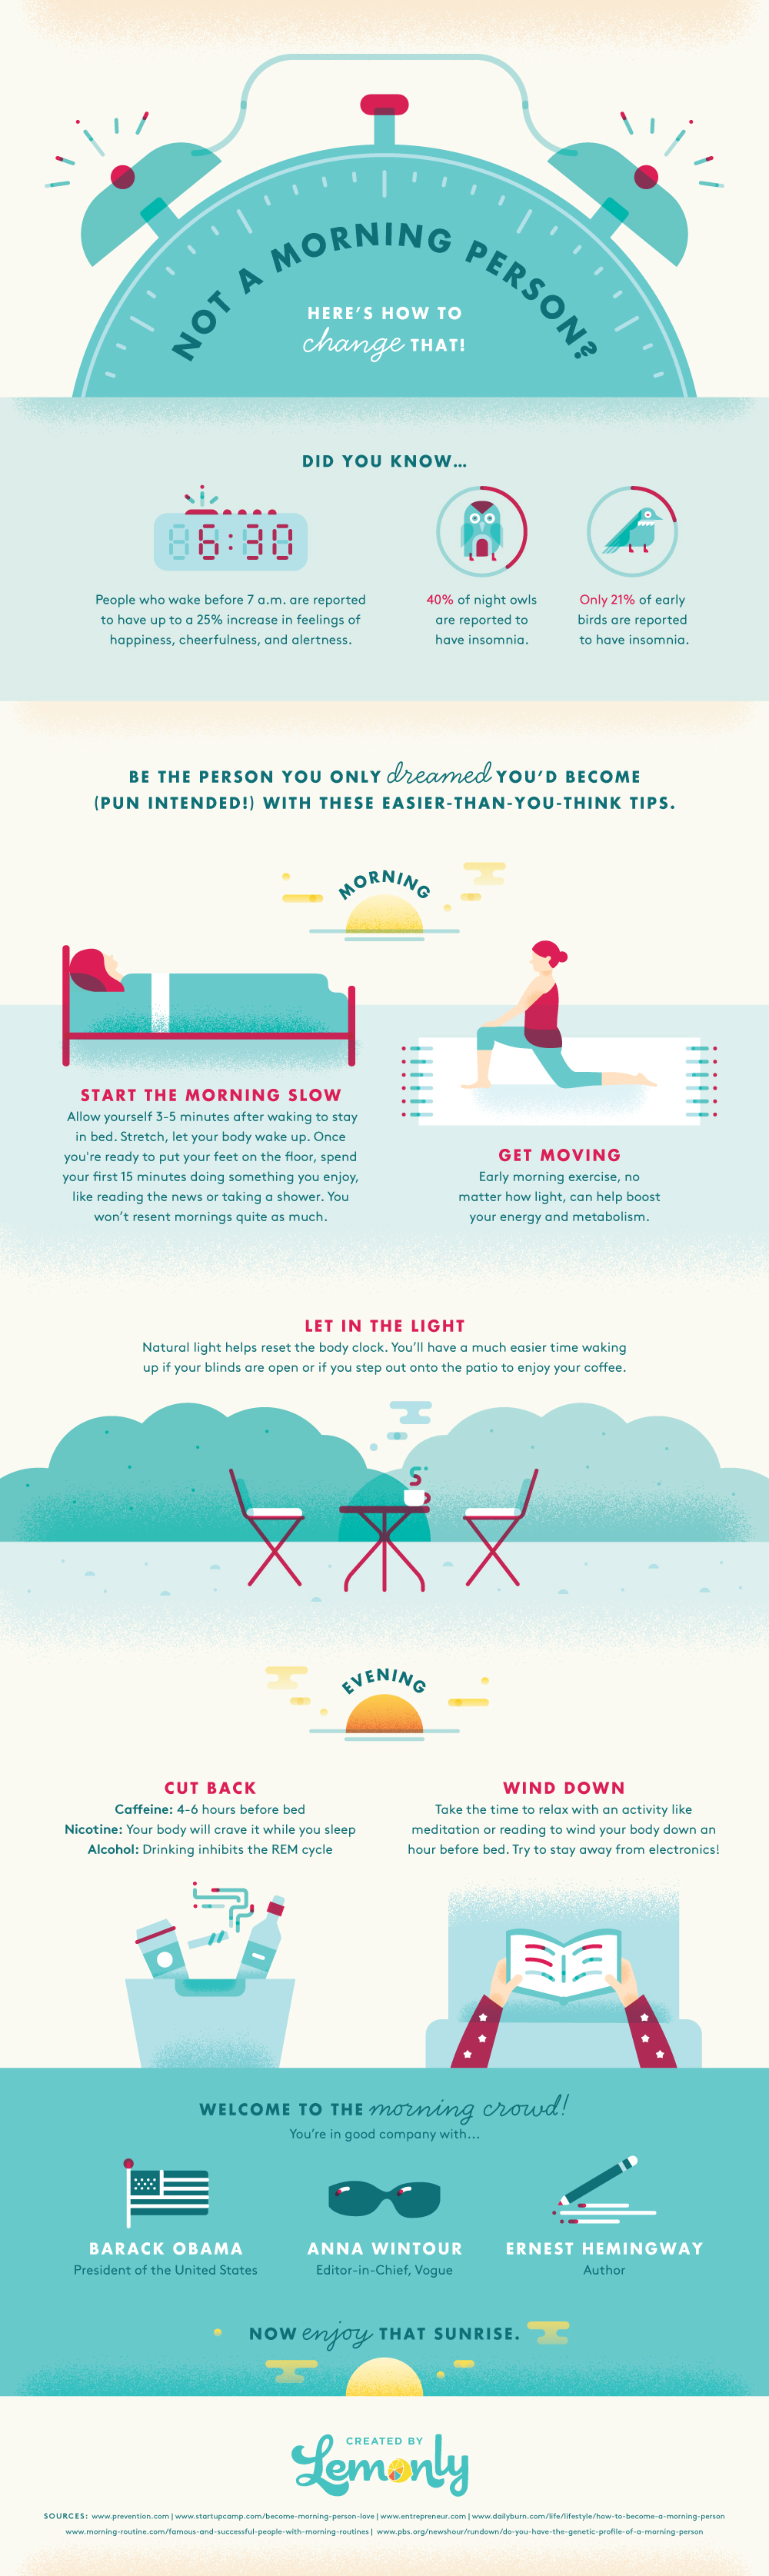 It's a Morning Person's World: Here's Why - Infographic